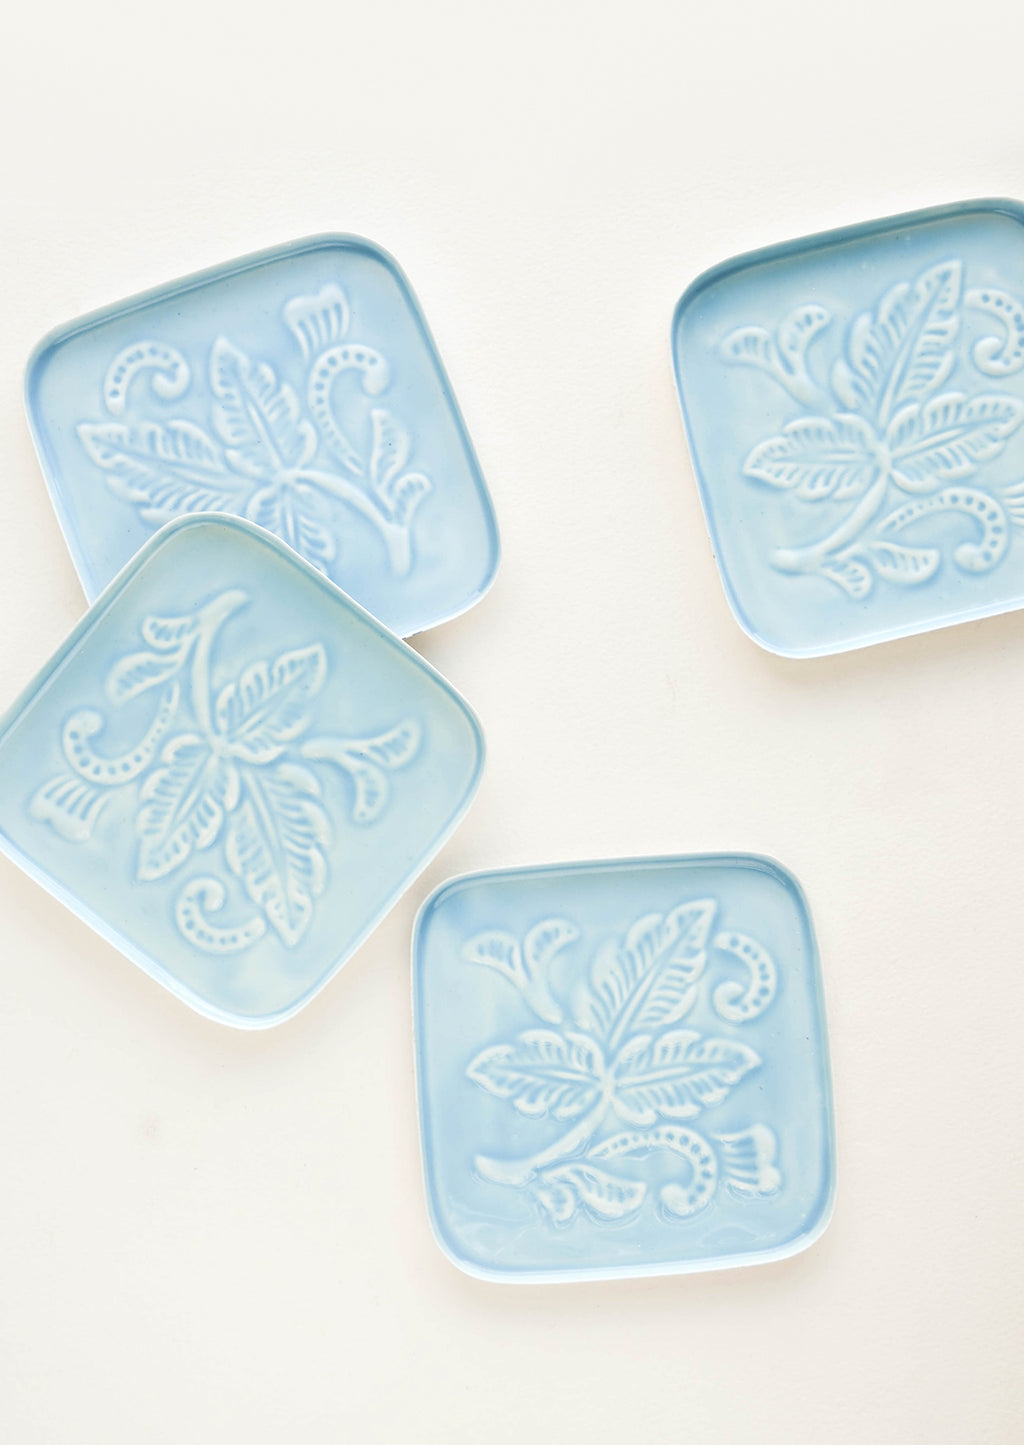 Aqua: Square coasters in blue enamel with raised floral motif